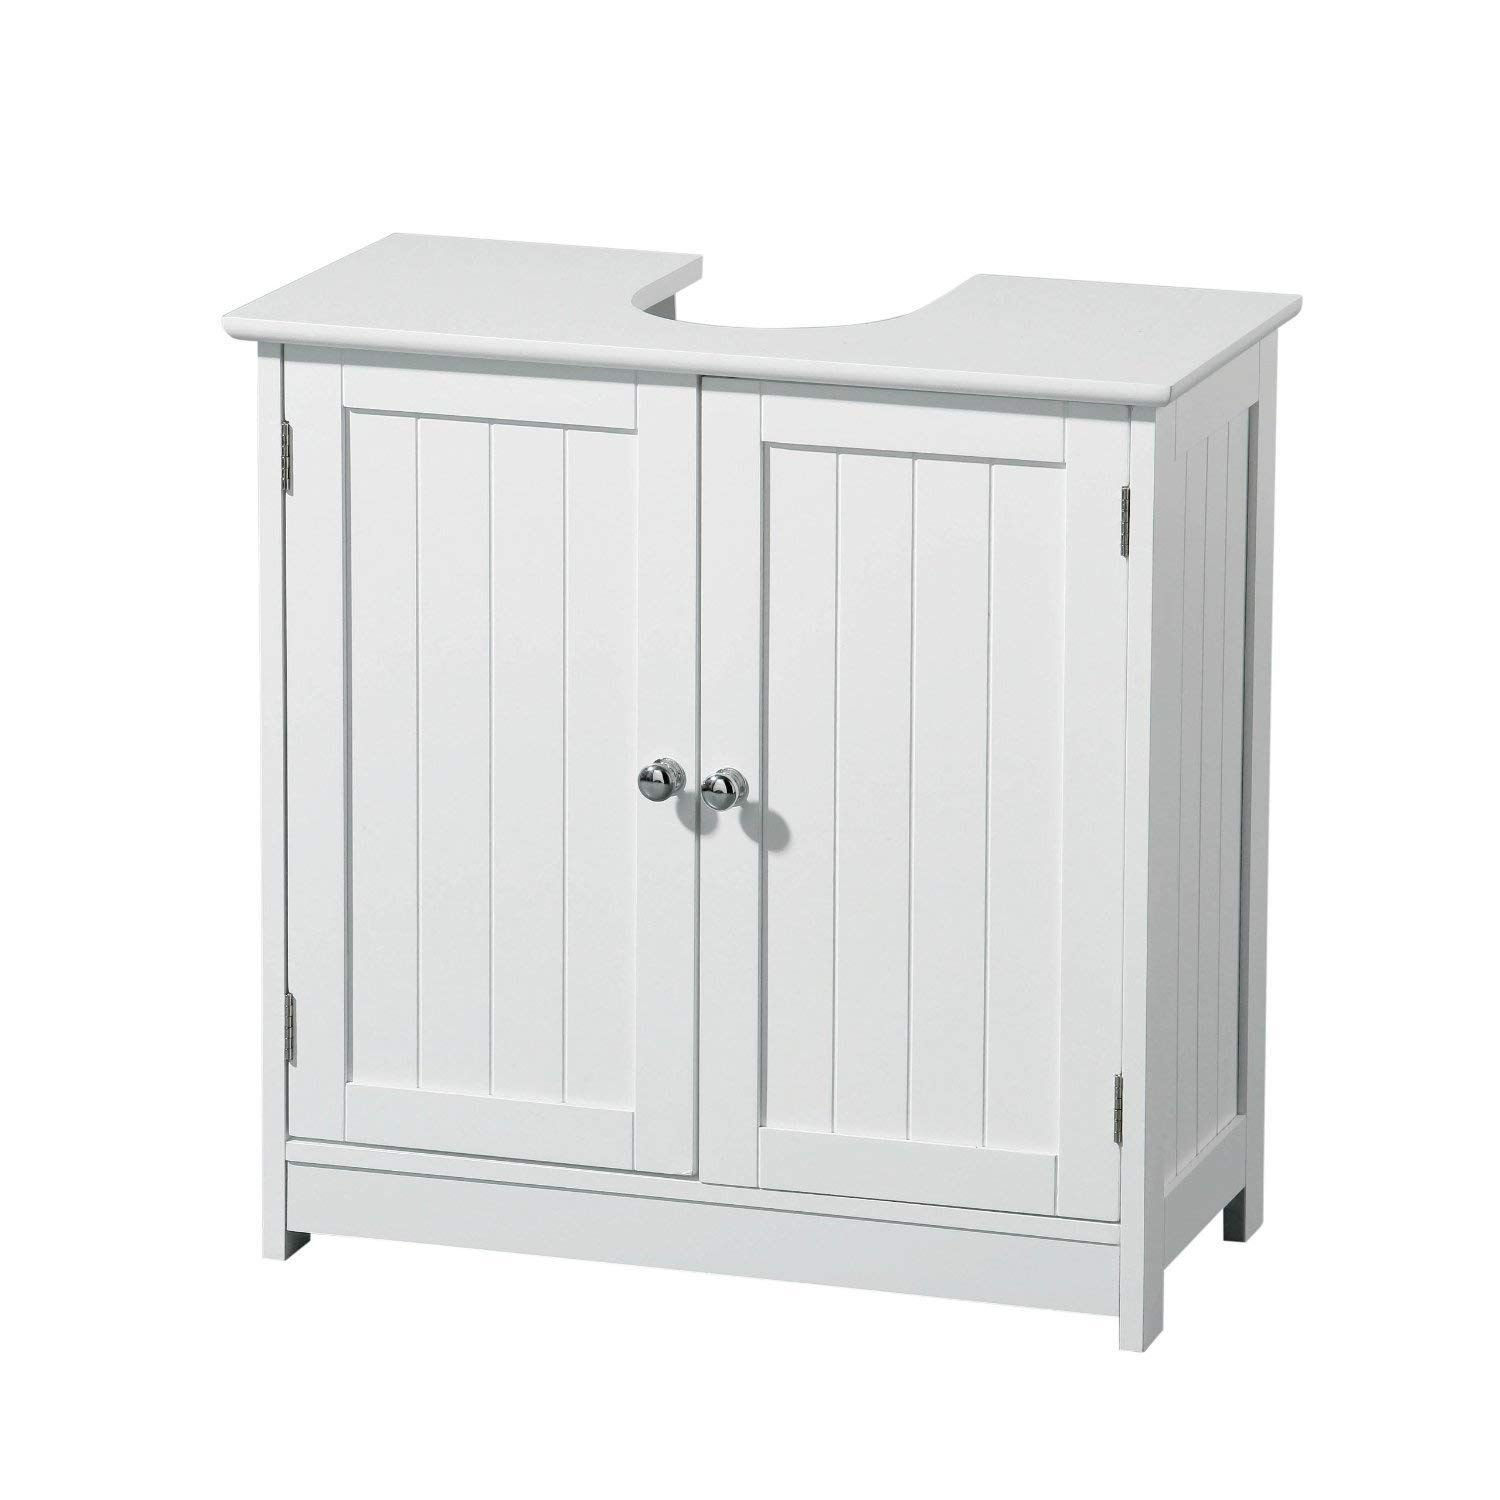 Bathroom Wall Mounted Cabinet Double Mirror Door Wooden Shelf Storage Unit White PDL